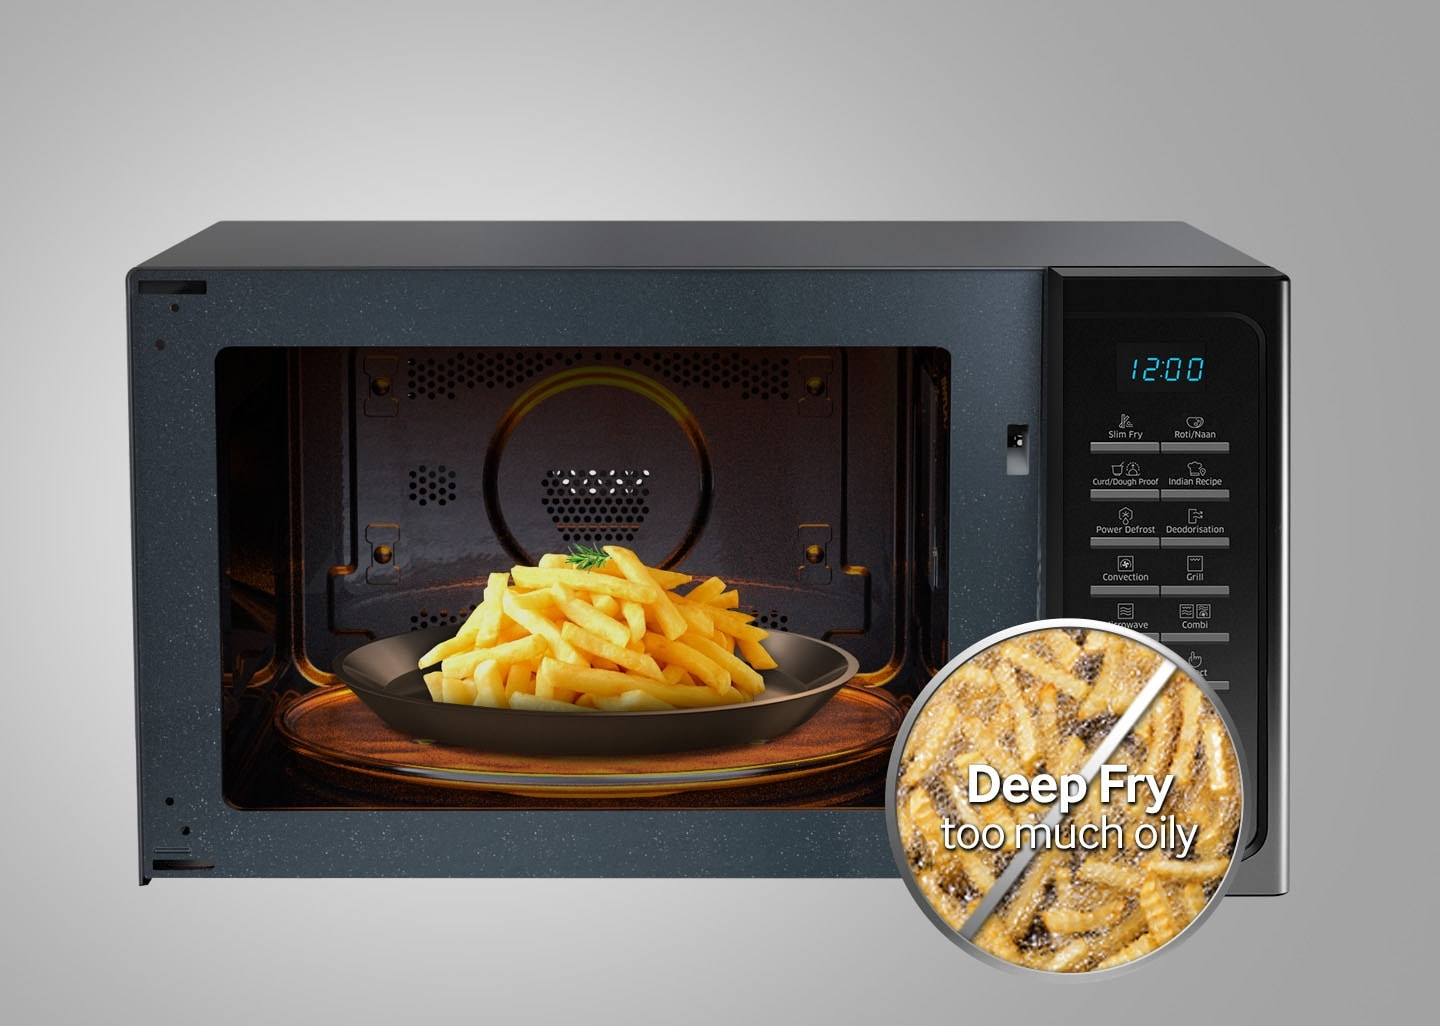 Microwave with oil free cooking